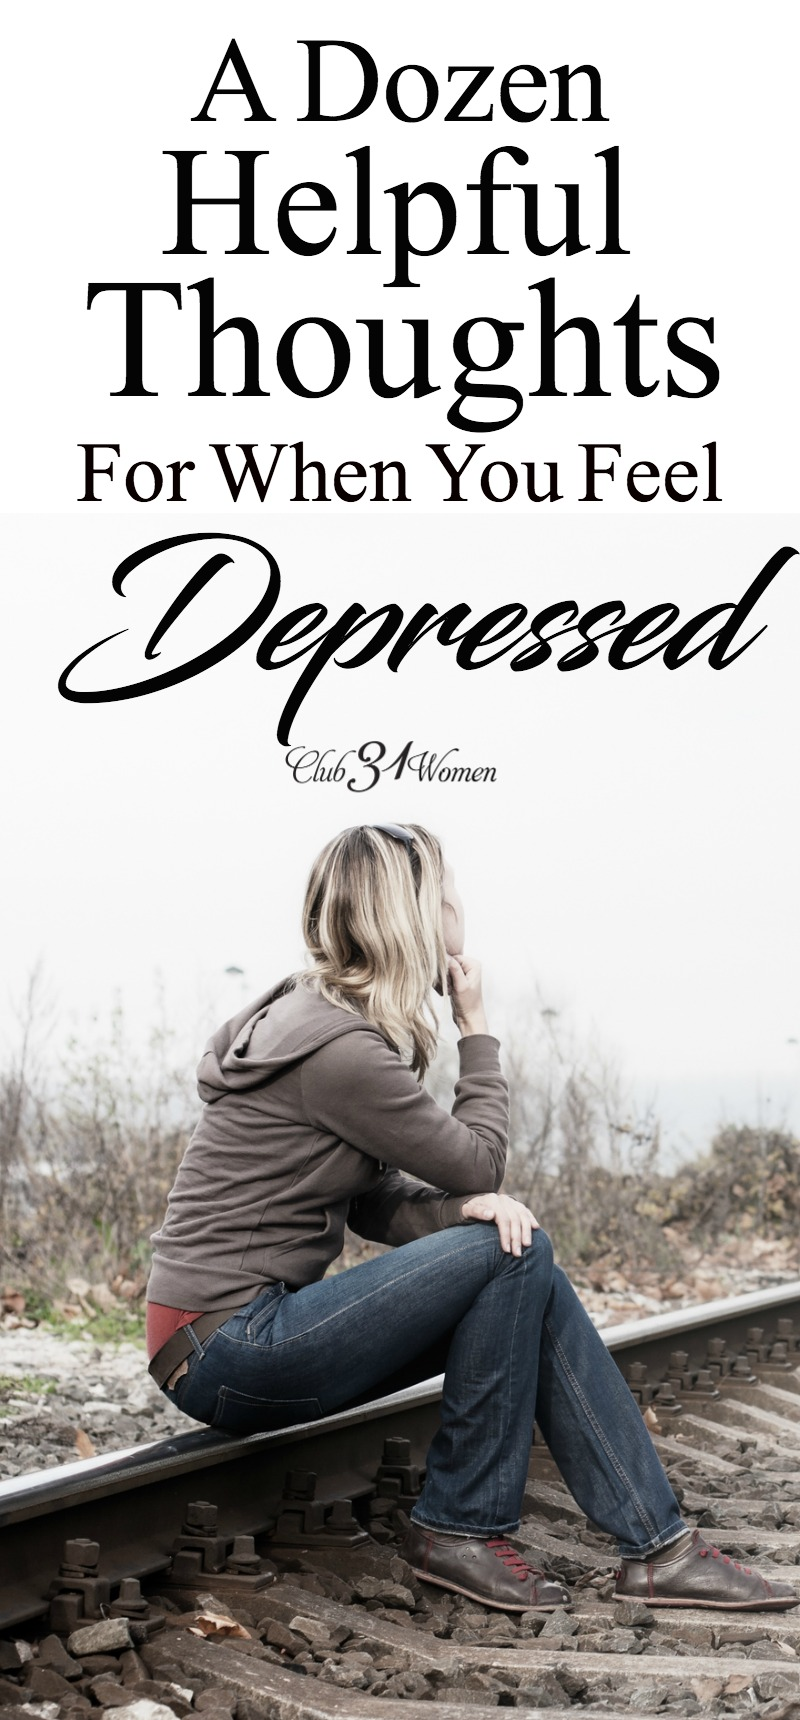 Depression comes uninvited, but it does come at times and can be hard to shake. What can you do when you are feeling depressed? via @Club31Women